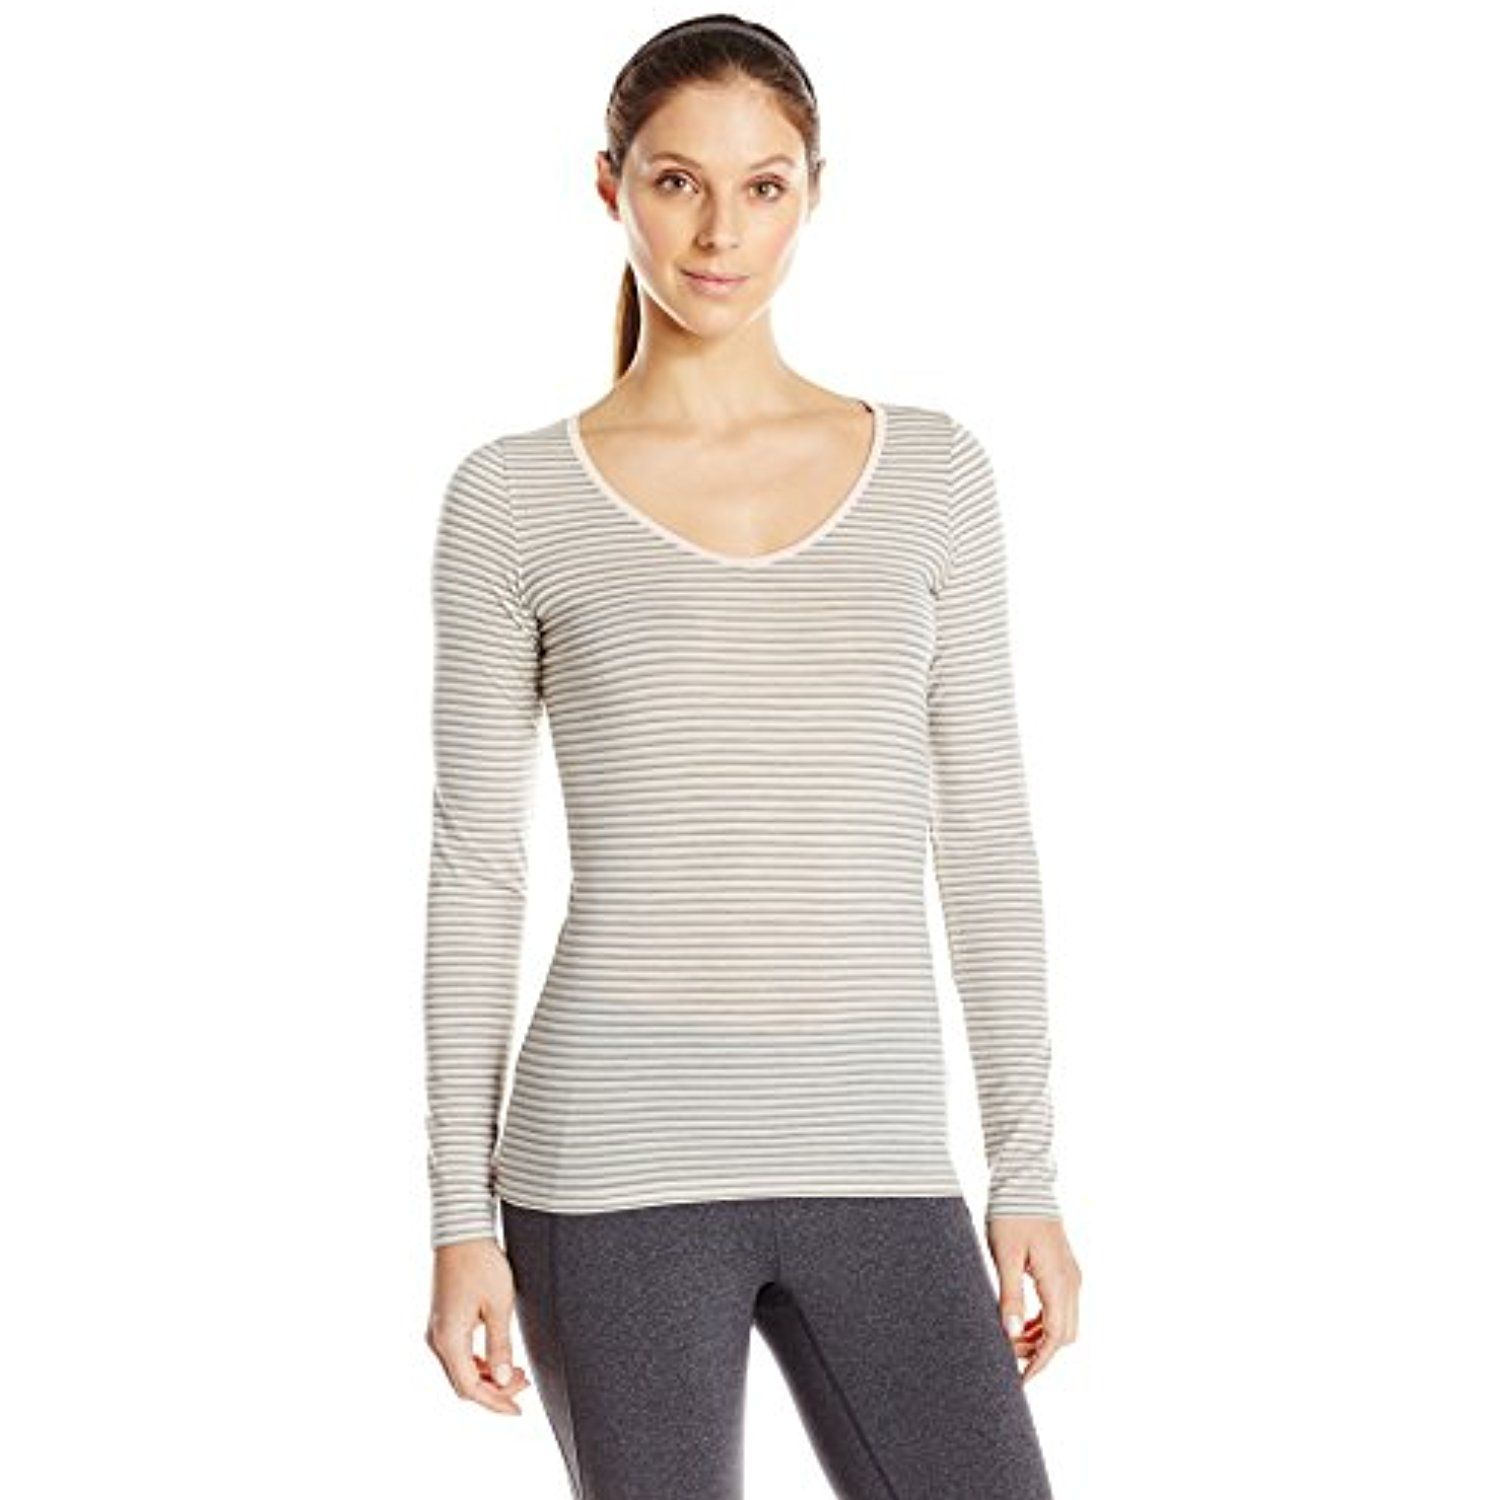 5b91f56726 Icebreaker Merino Women's Siren Long Sleeve Sweetheart >>> Click on the  image for additional details. (This is an affiliate link) #BaseLayers